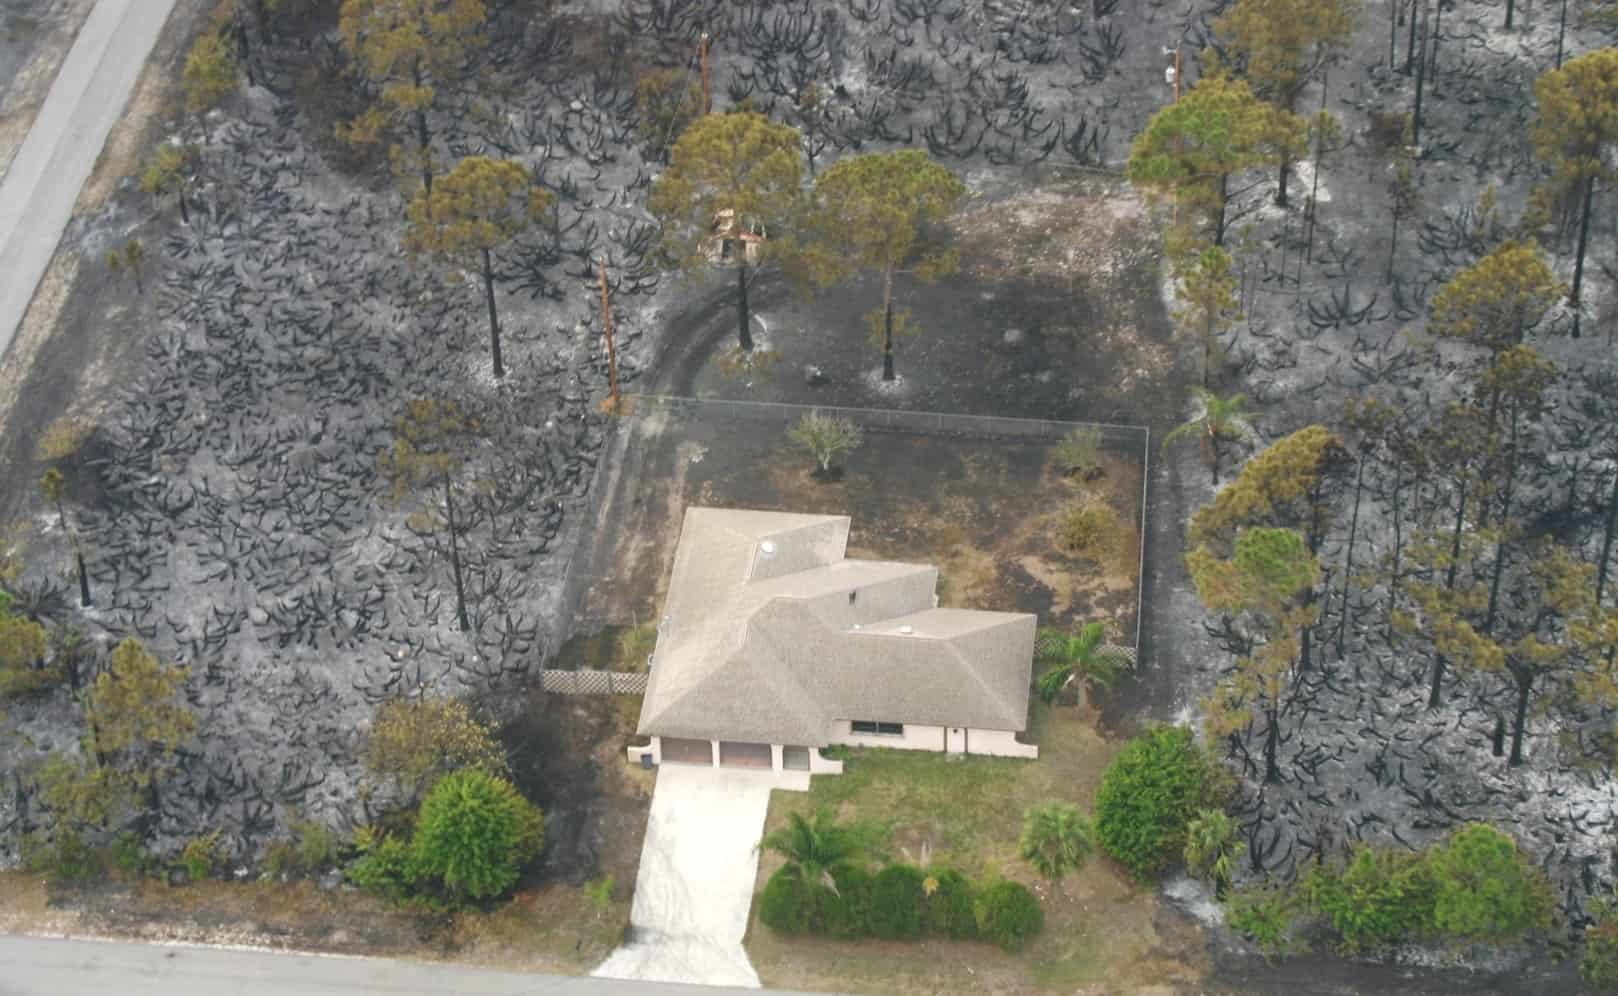 Aerial view of a home buffered by defensible space but otherwise surrounded by a burned landscape